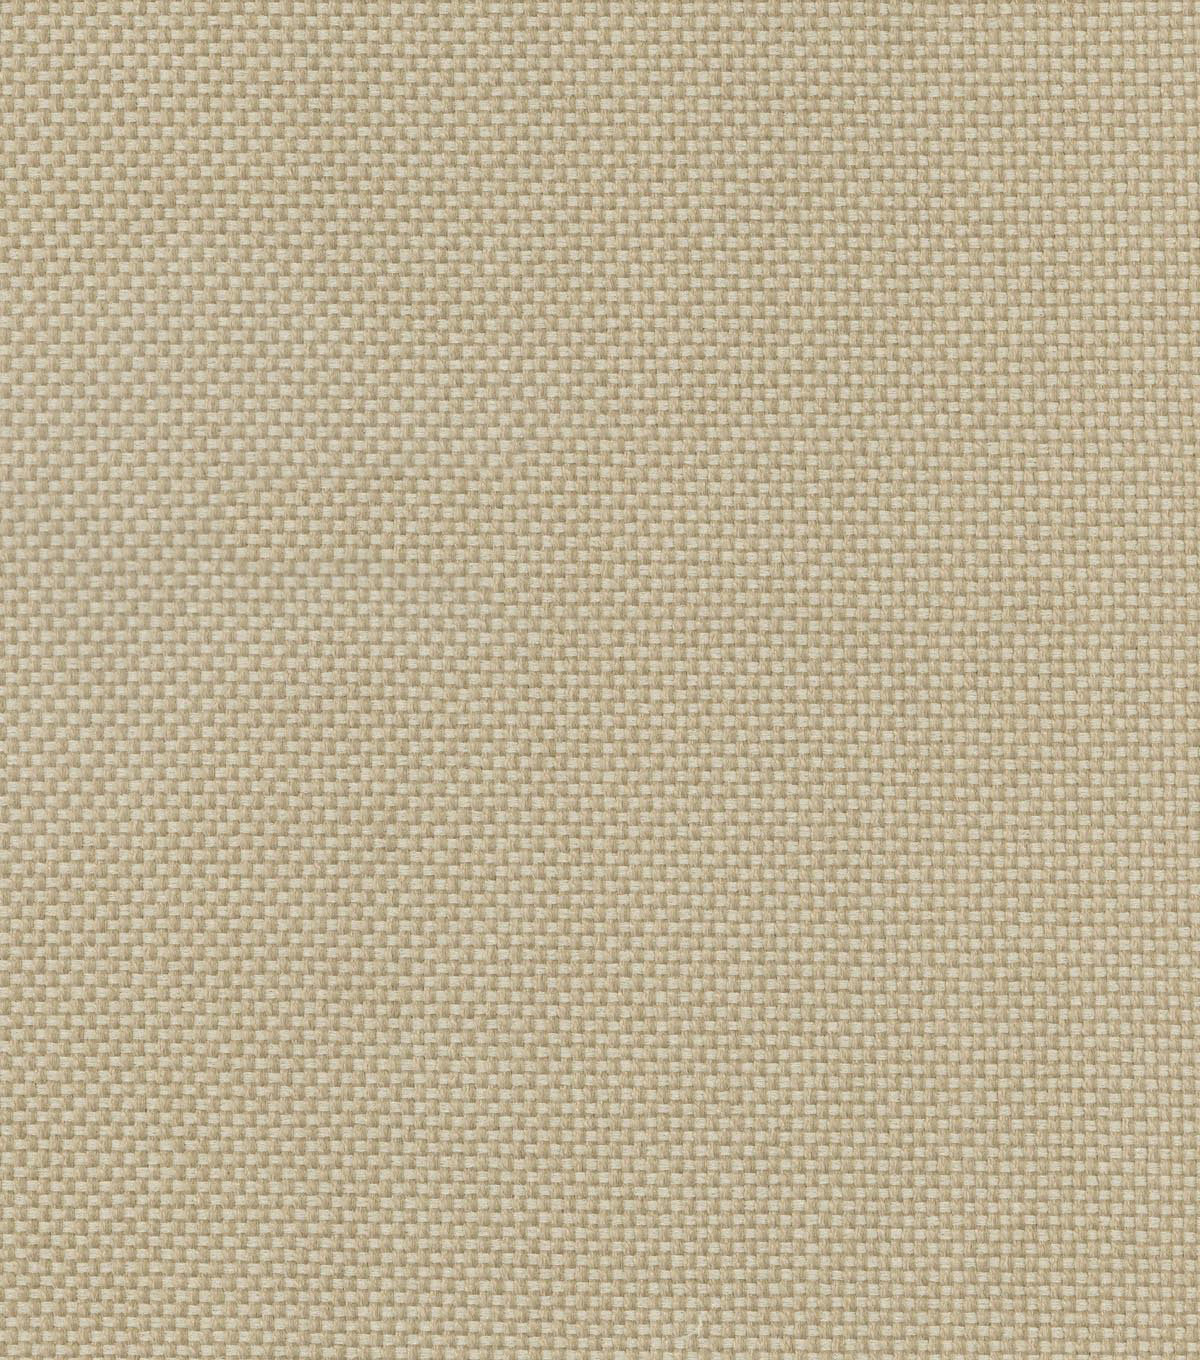 Home Decor 8\u0022x8\u0022 Swatch Fabric-Waverly SoHo Solid Woodland